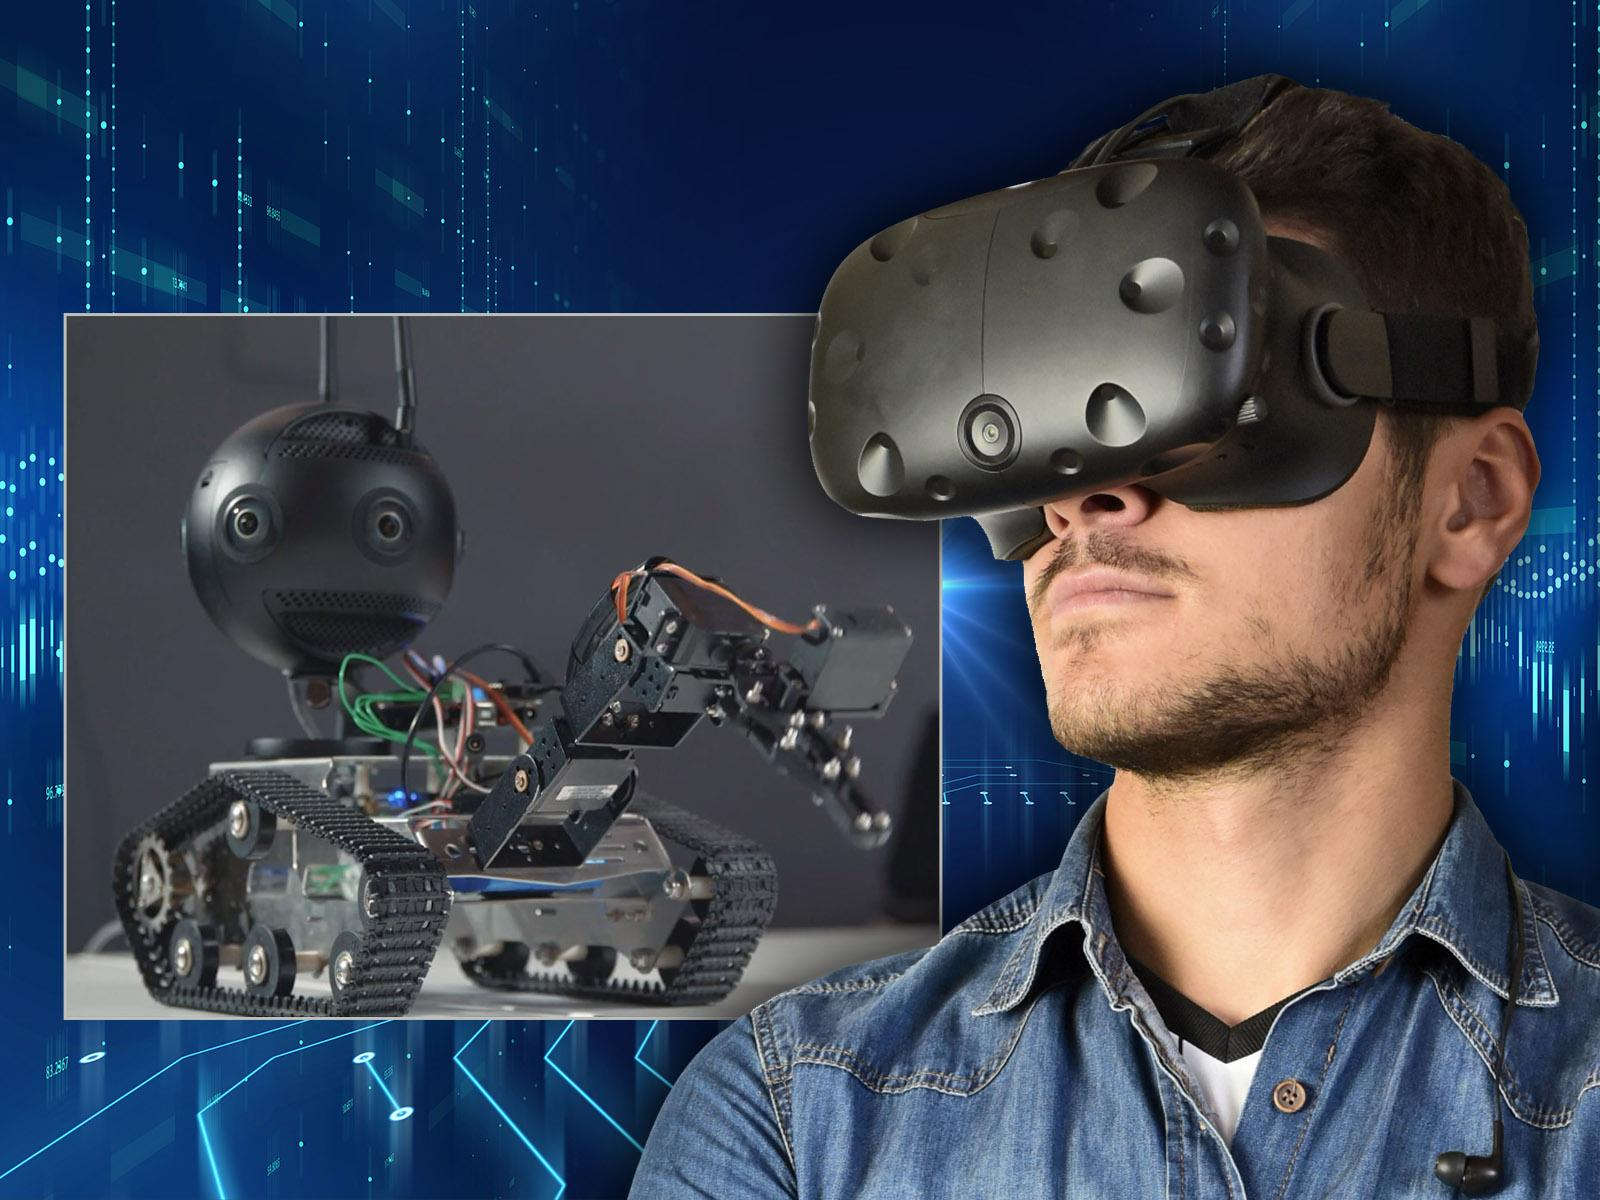 Image of a man wearing a VR headset looking at a robot